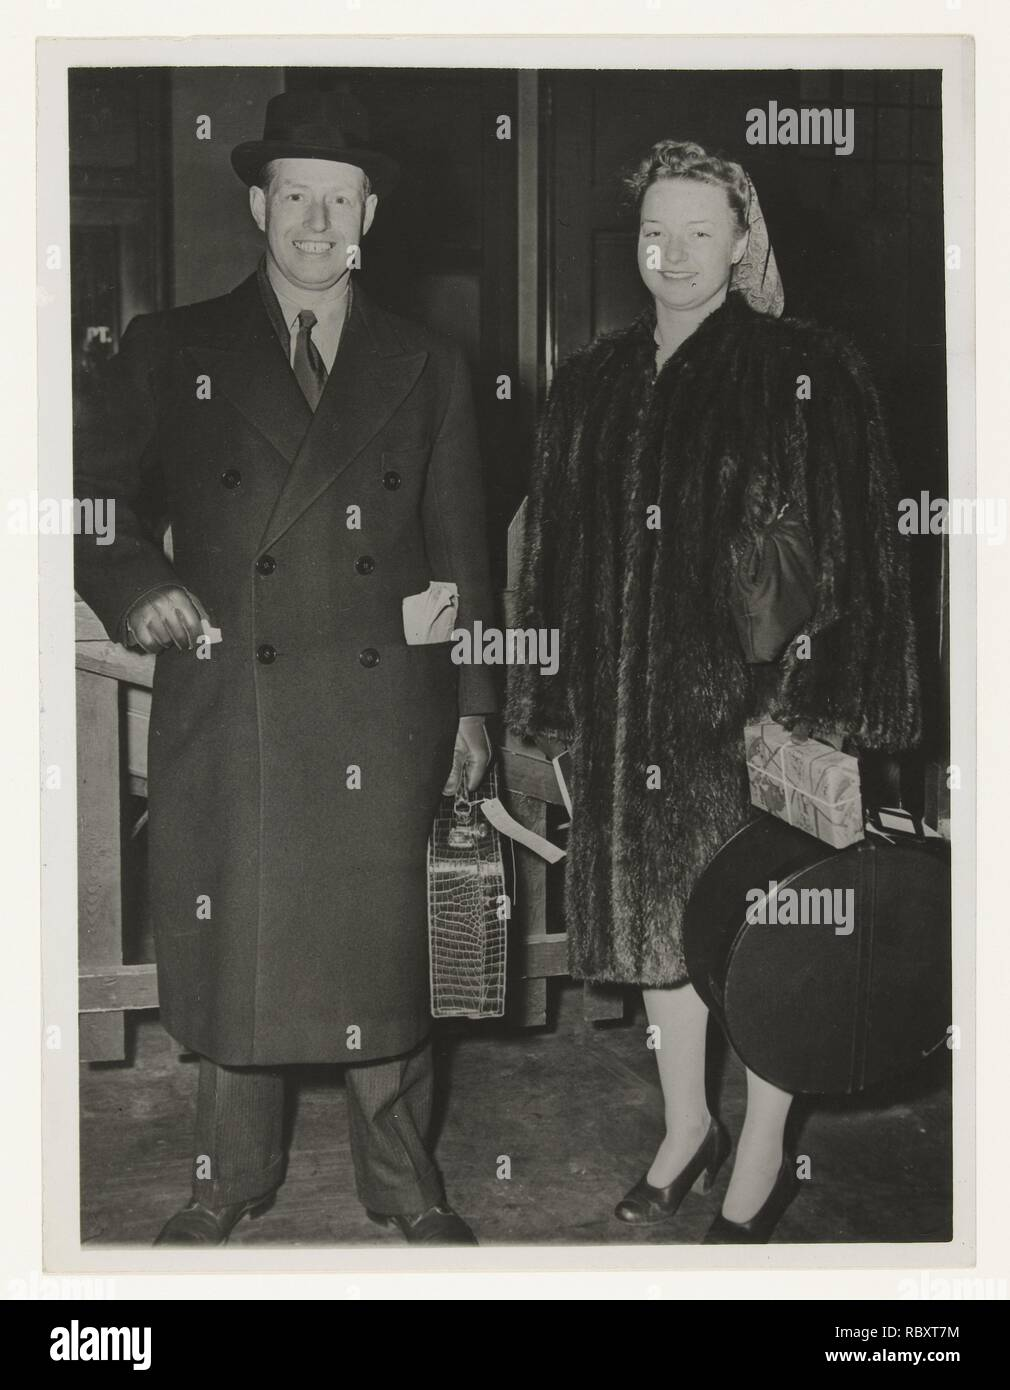 Former governor-general Tjarda van Starkenborgh and his daughter in New York, Associated Press, 1946.jpg - RBXT7M 1RBXT7M - Stock Image